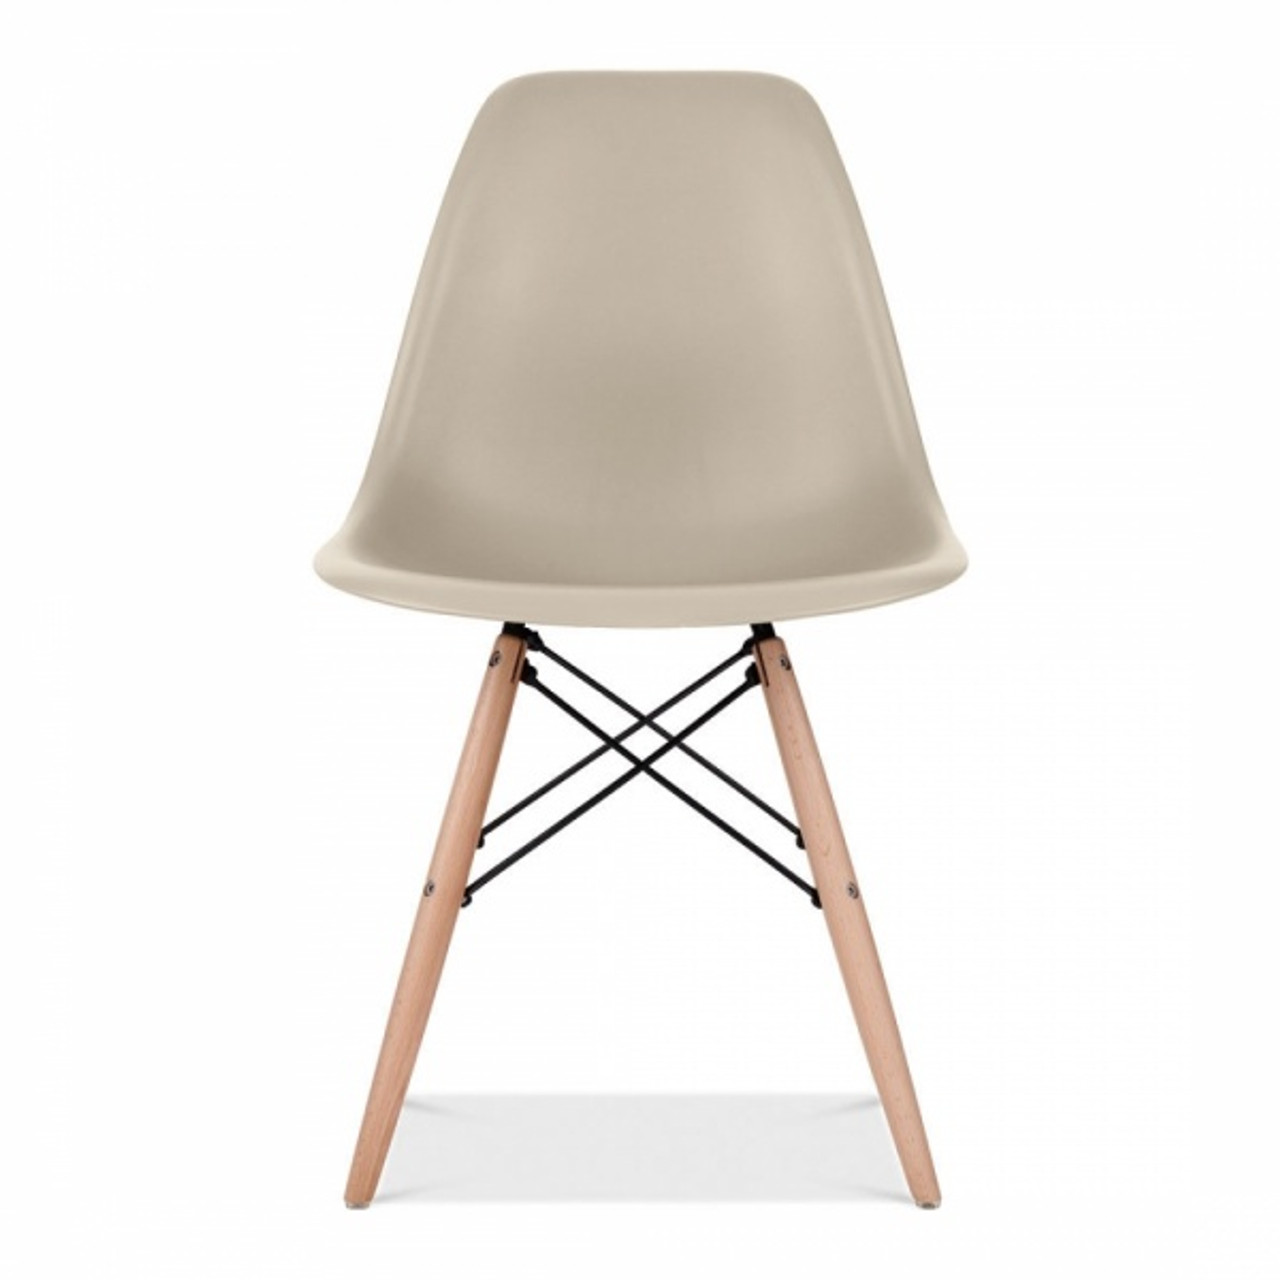 new arrival 383cd c24e3 Eames Inspired Plastic Scandi Dining Chair - Beige